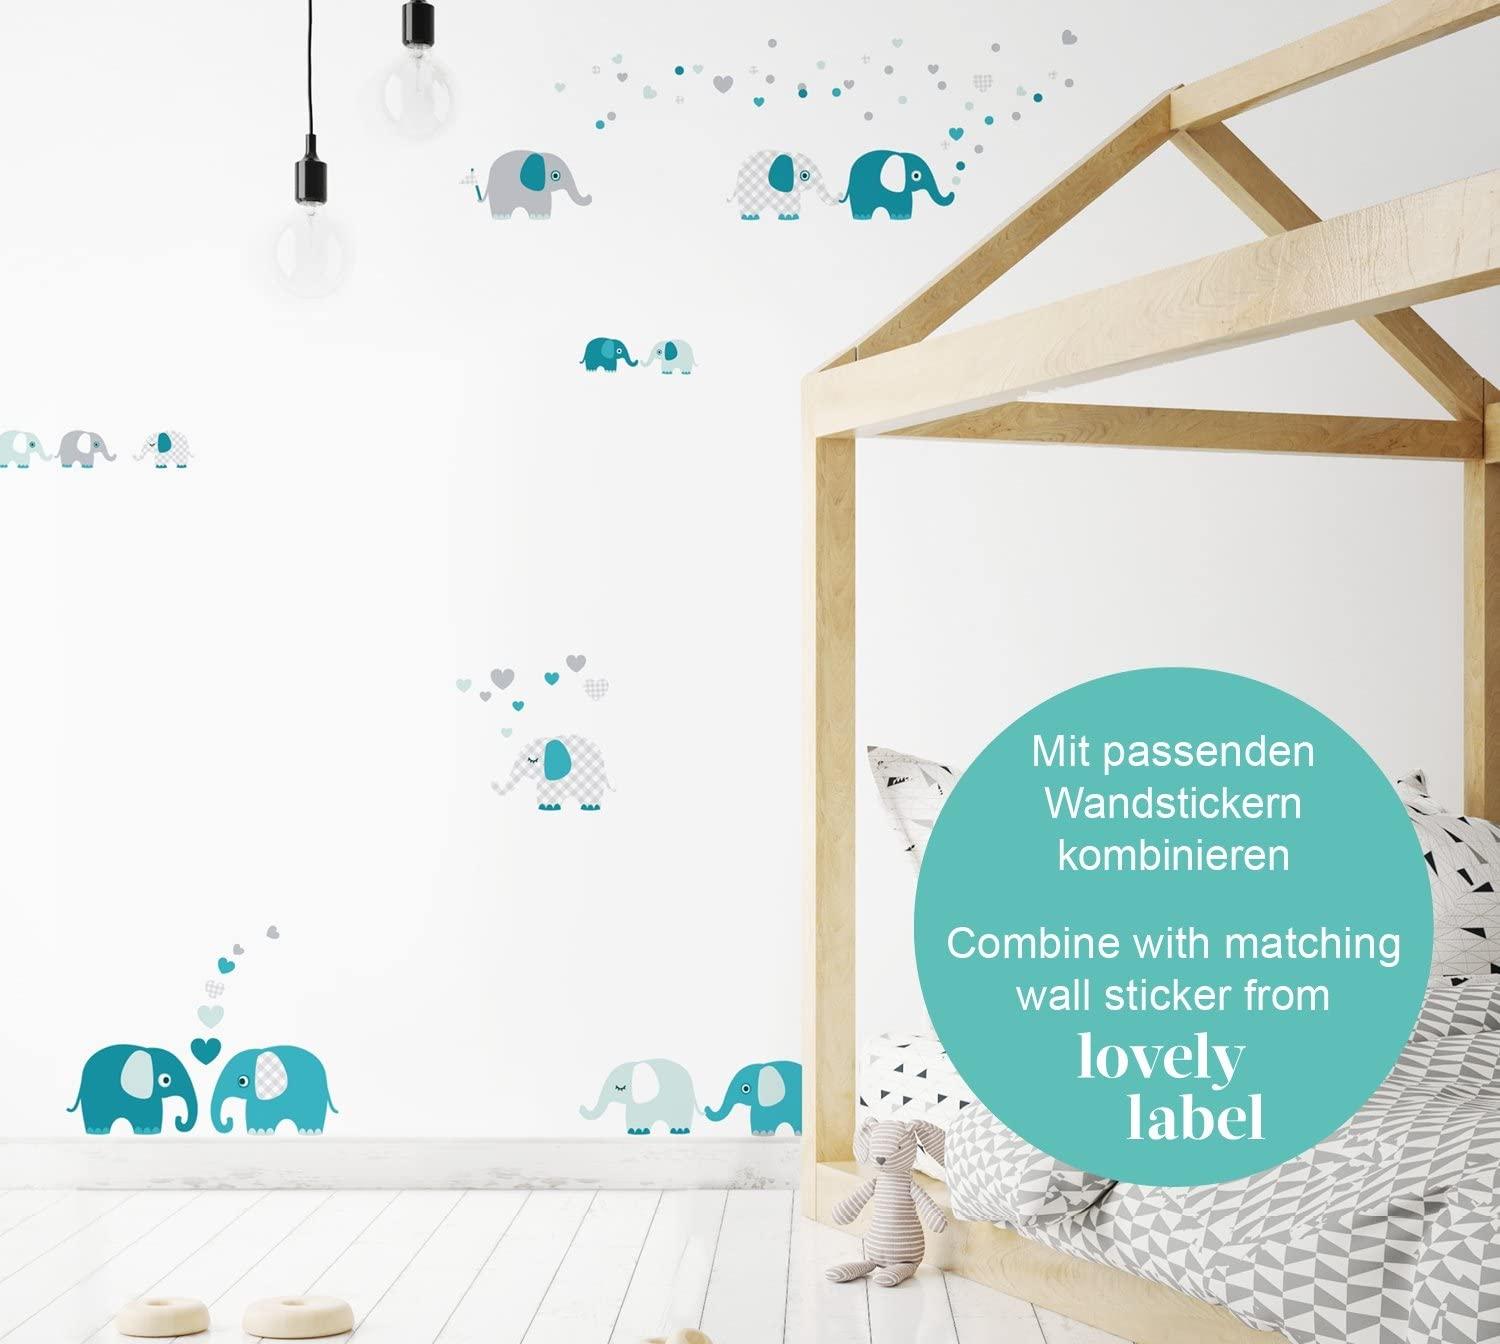 Self-Adhesive Wall Border Stickers Wall Decal and Stickers for Children Elephant Wall Stickers for Childrens Playroom or Bedroom in Teal-Mint-Grey lovely label Wallpaper Border for Kids